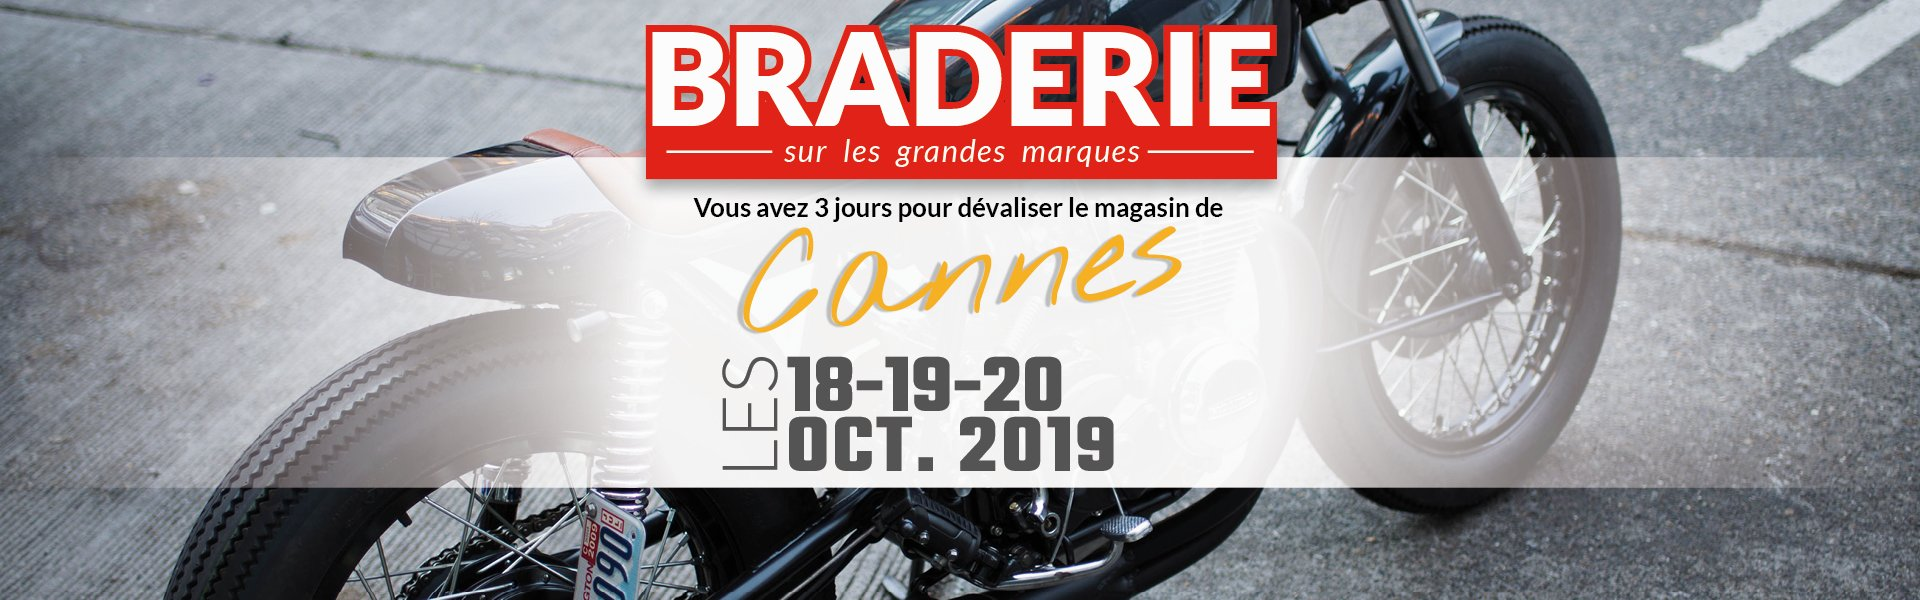 Braderie Cardy Cannes octobre 2019, BRADERIE CARDY CANNES OCTOBRE 2019